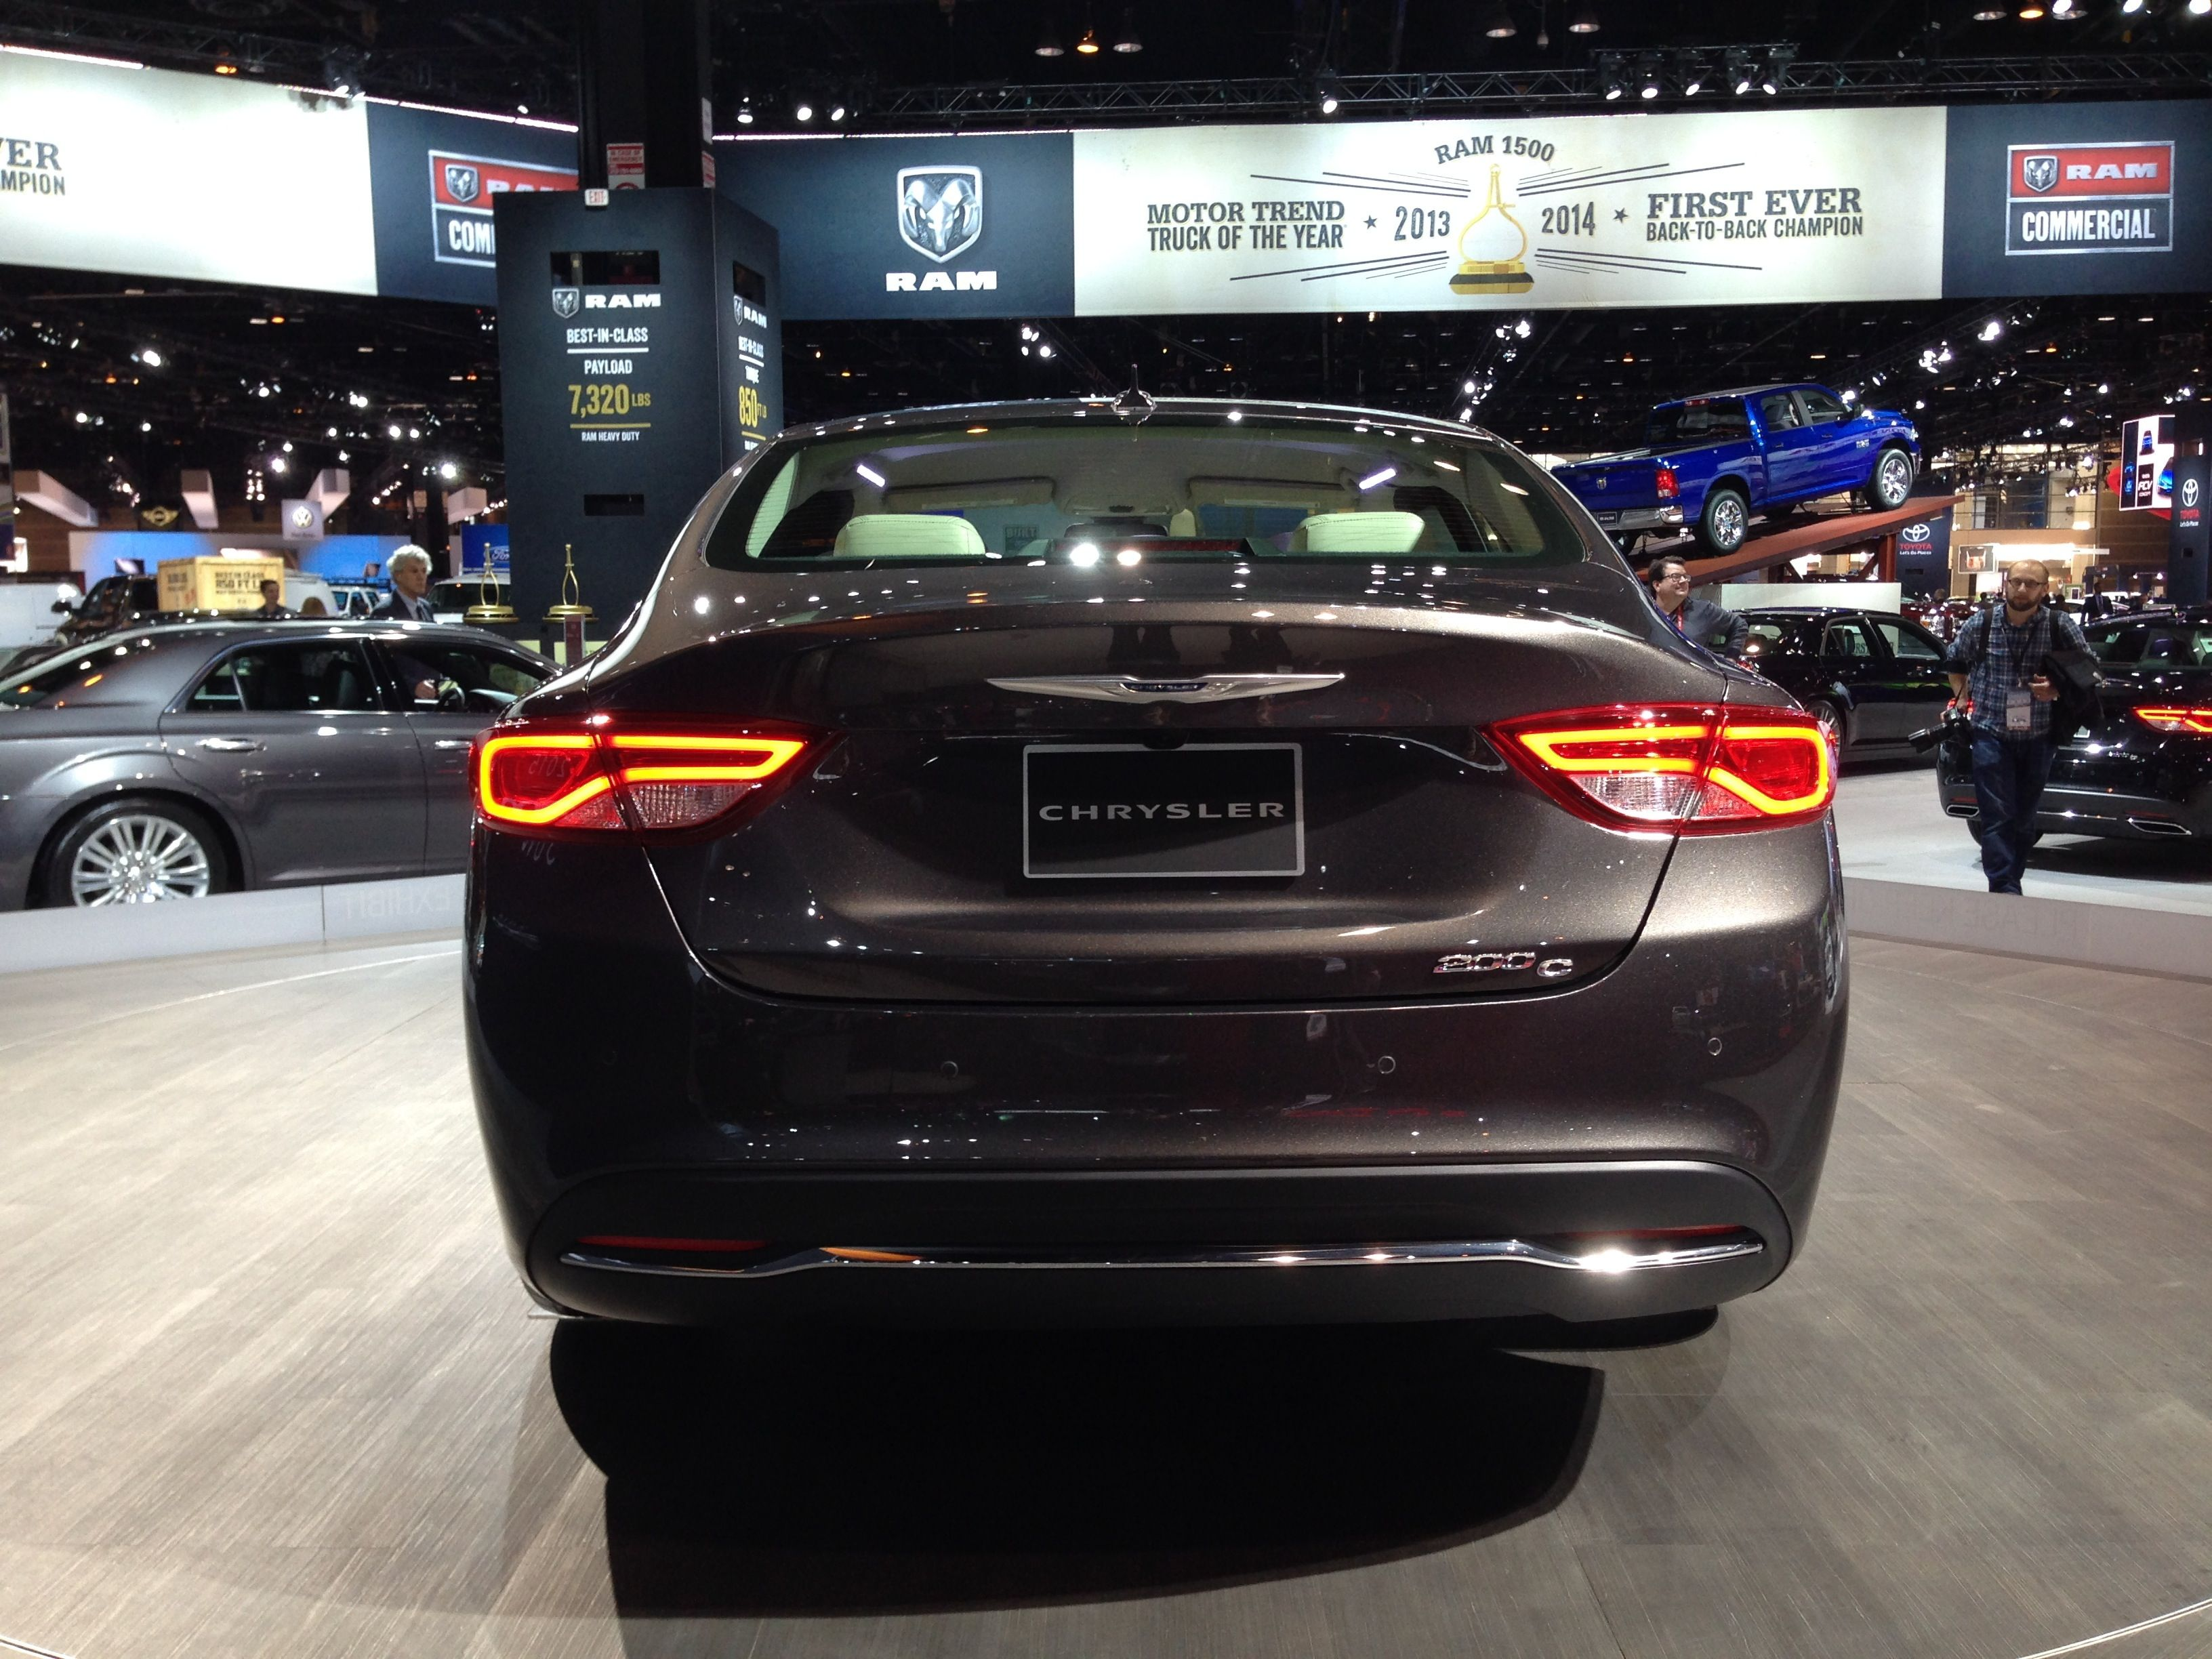 The tail end of the all new 2015 chrysler 200 in granite crystal metallic at the